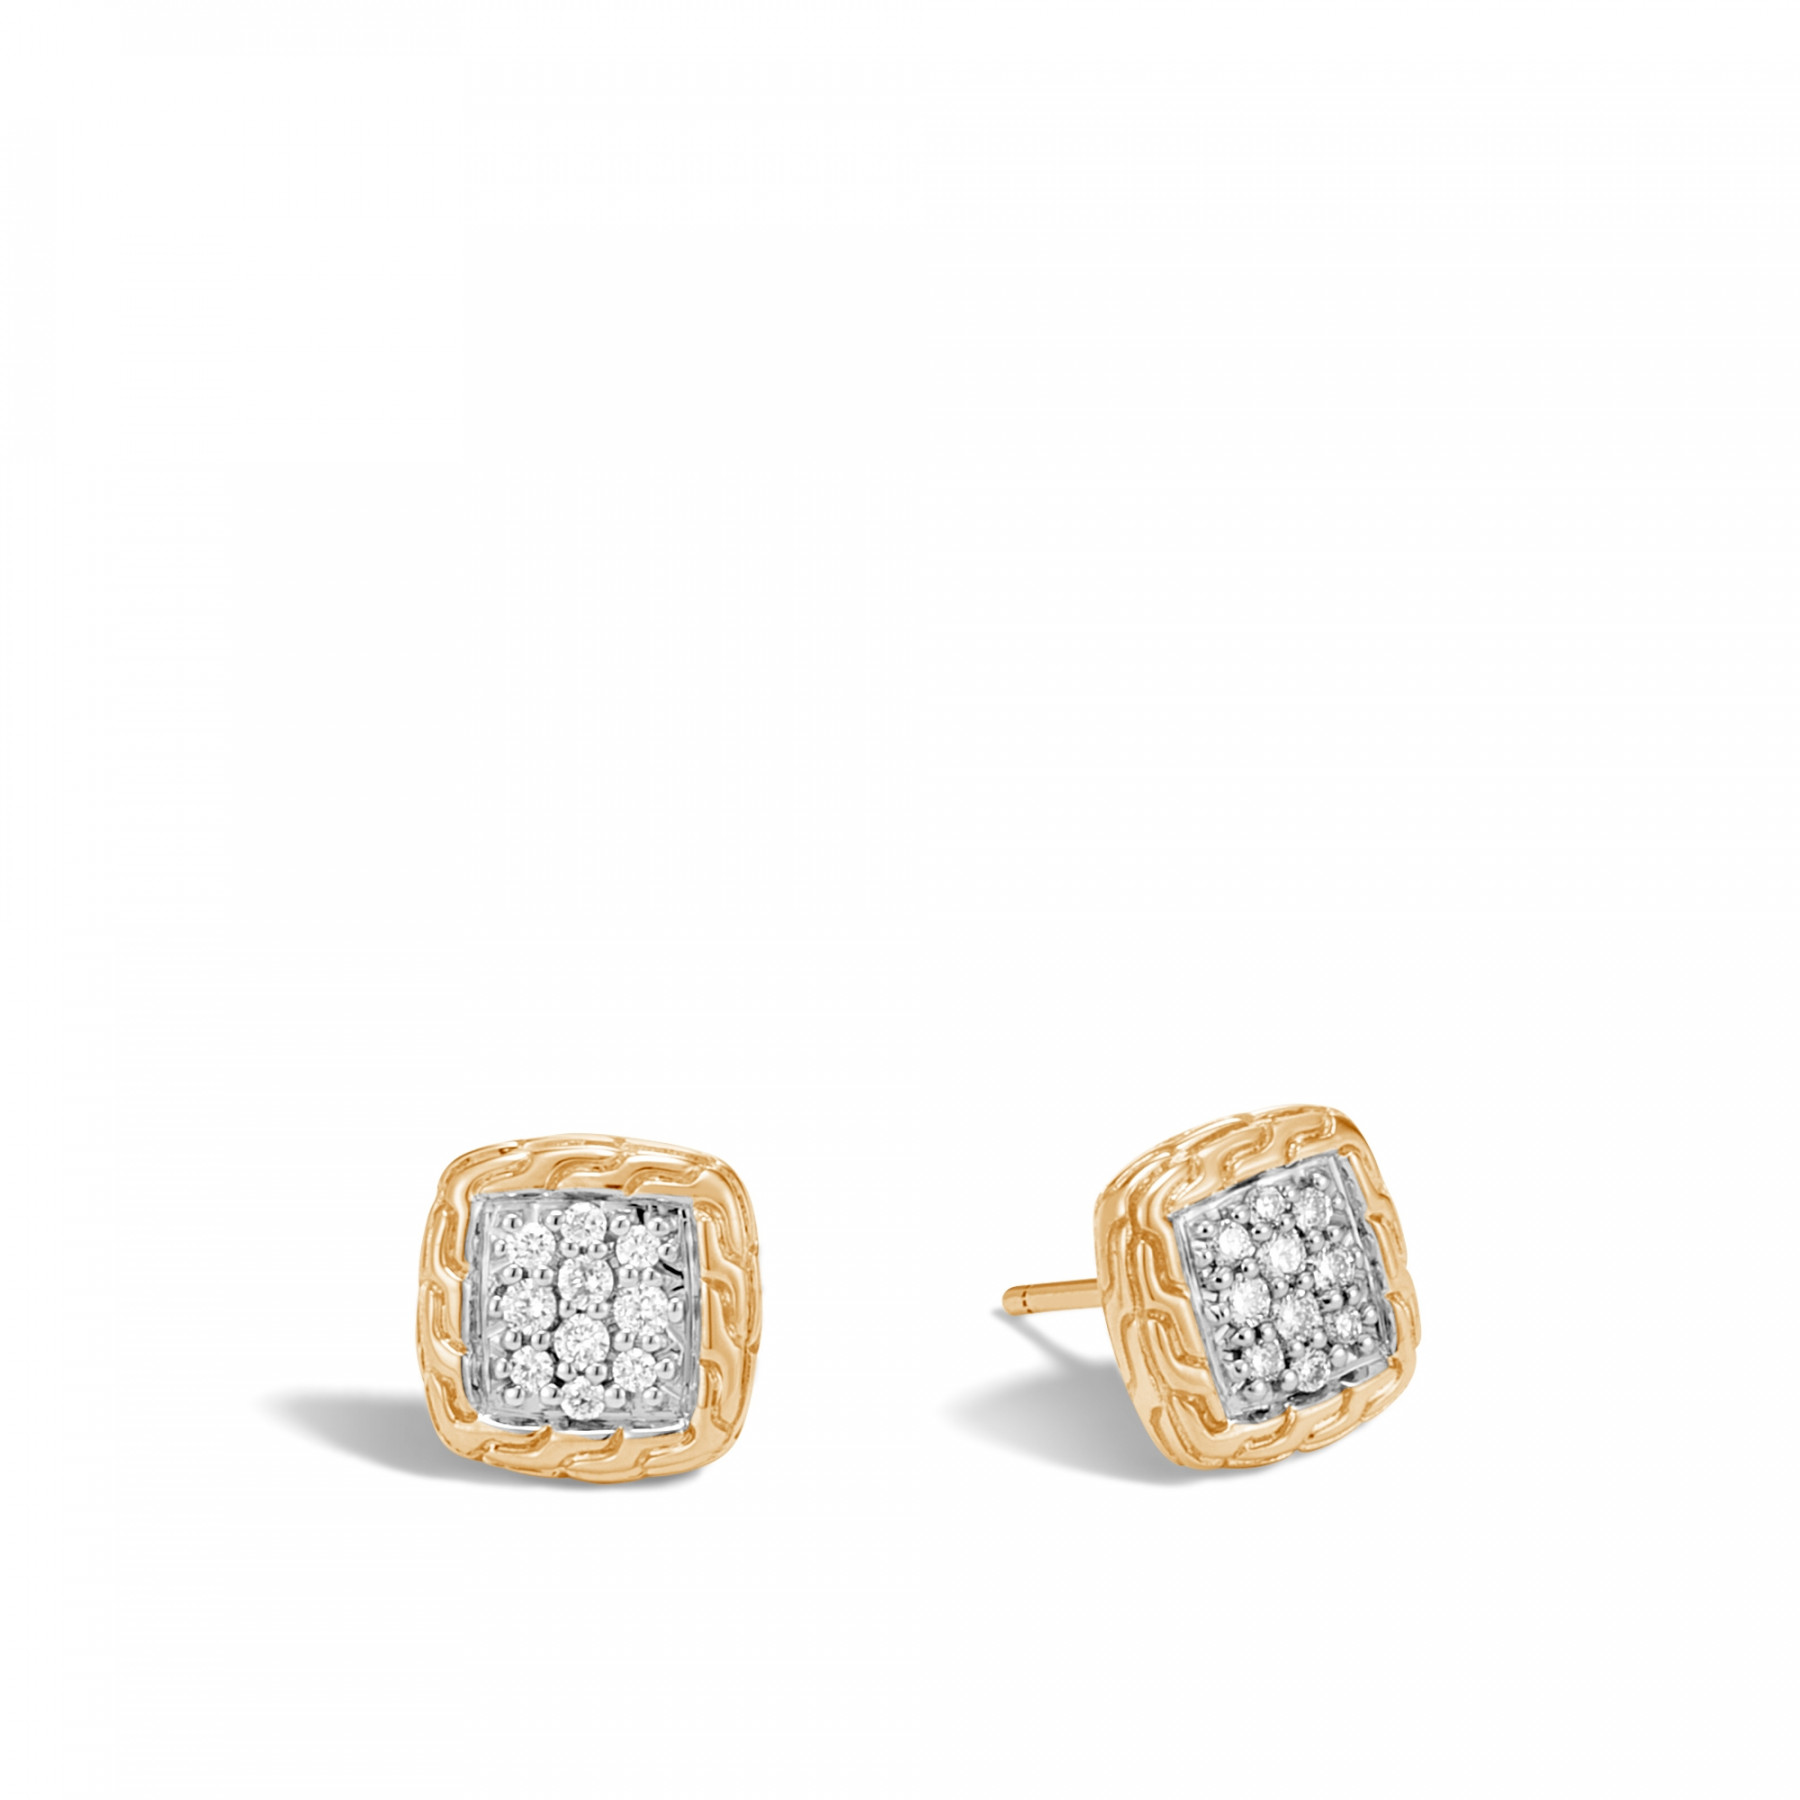 John Hardy Classic Chain Diamond Stud Earring in Yellow Gold